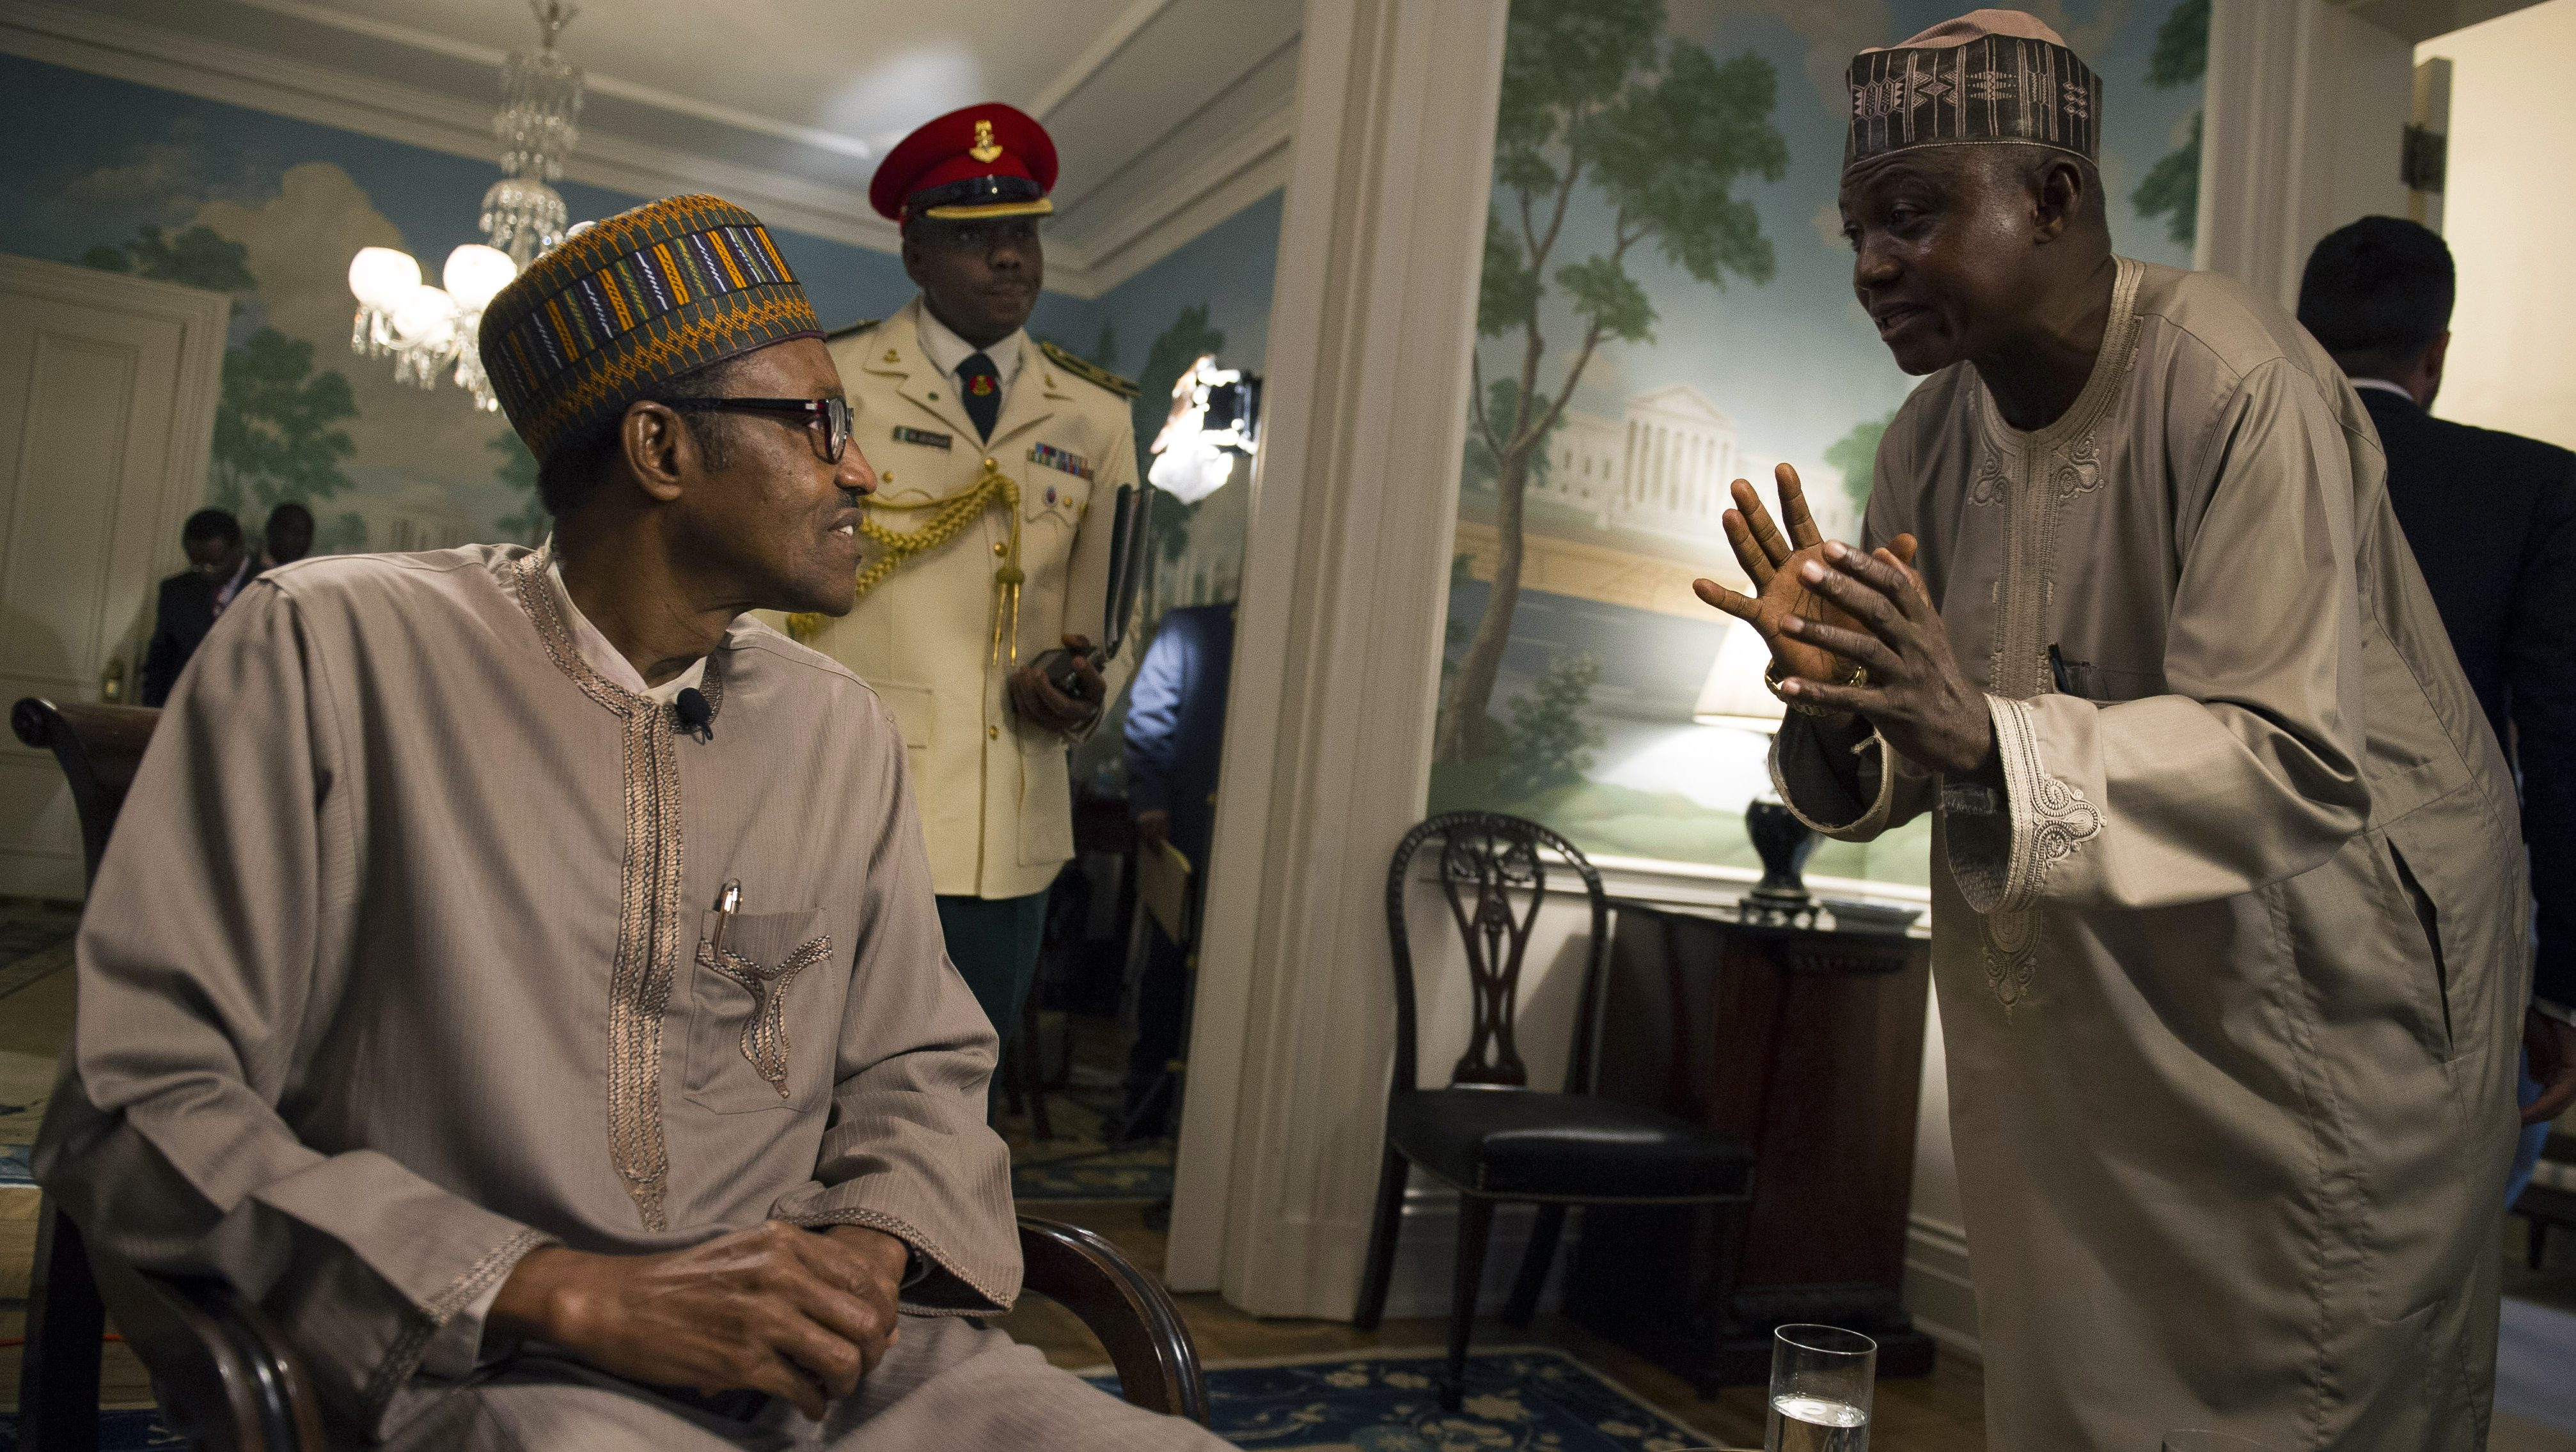 Nigerian President Muhammadu Buhari confers with advisor between news media interviews at Blair House in Washington, Tuesday, July 21, 2015. (AP Photo/Cliff Owen)